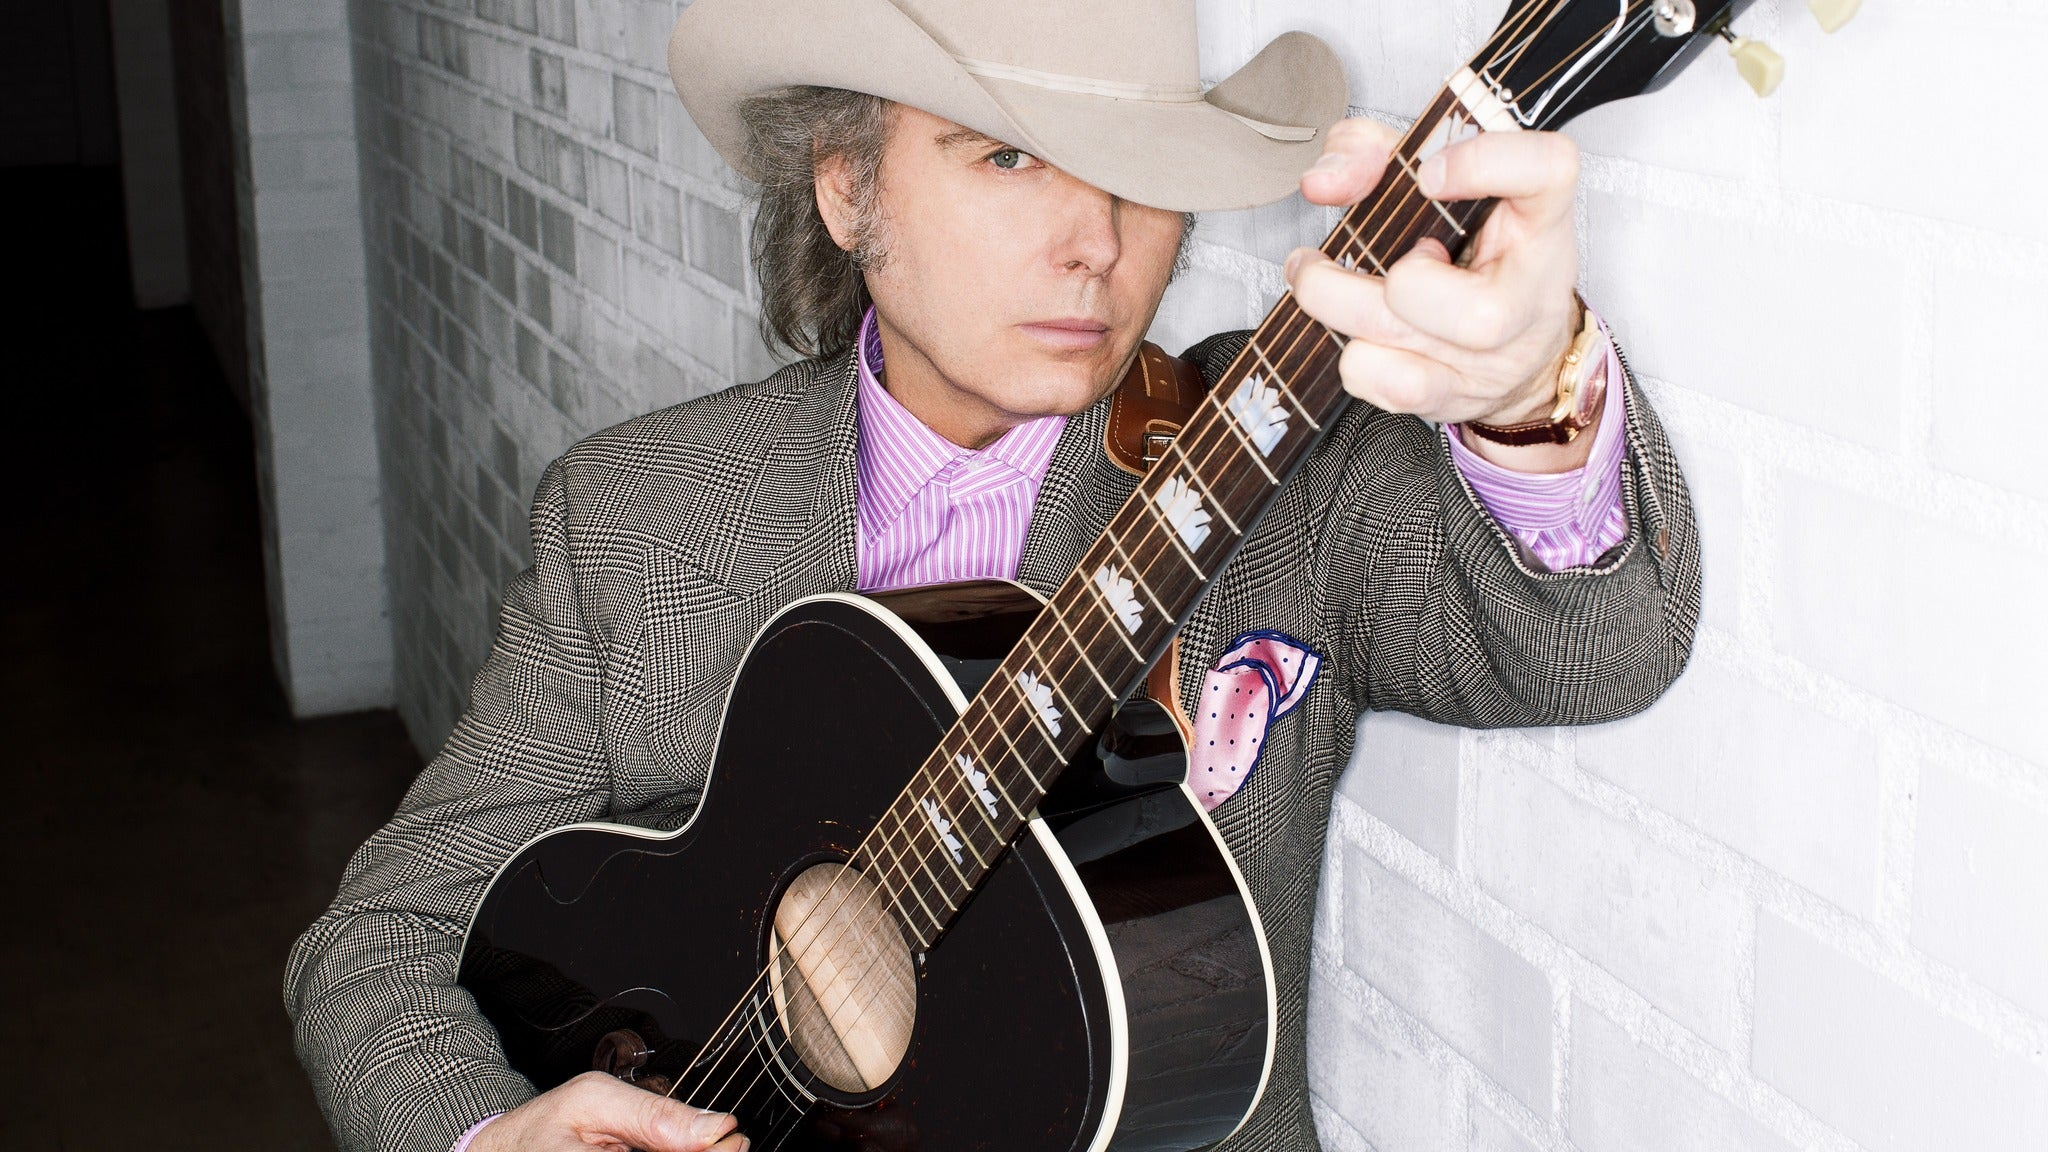 Dwight Yoakam at Wind Creek Casino & Hotel - Wetumpka